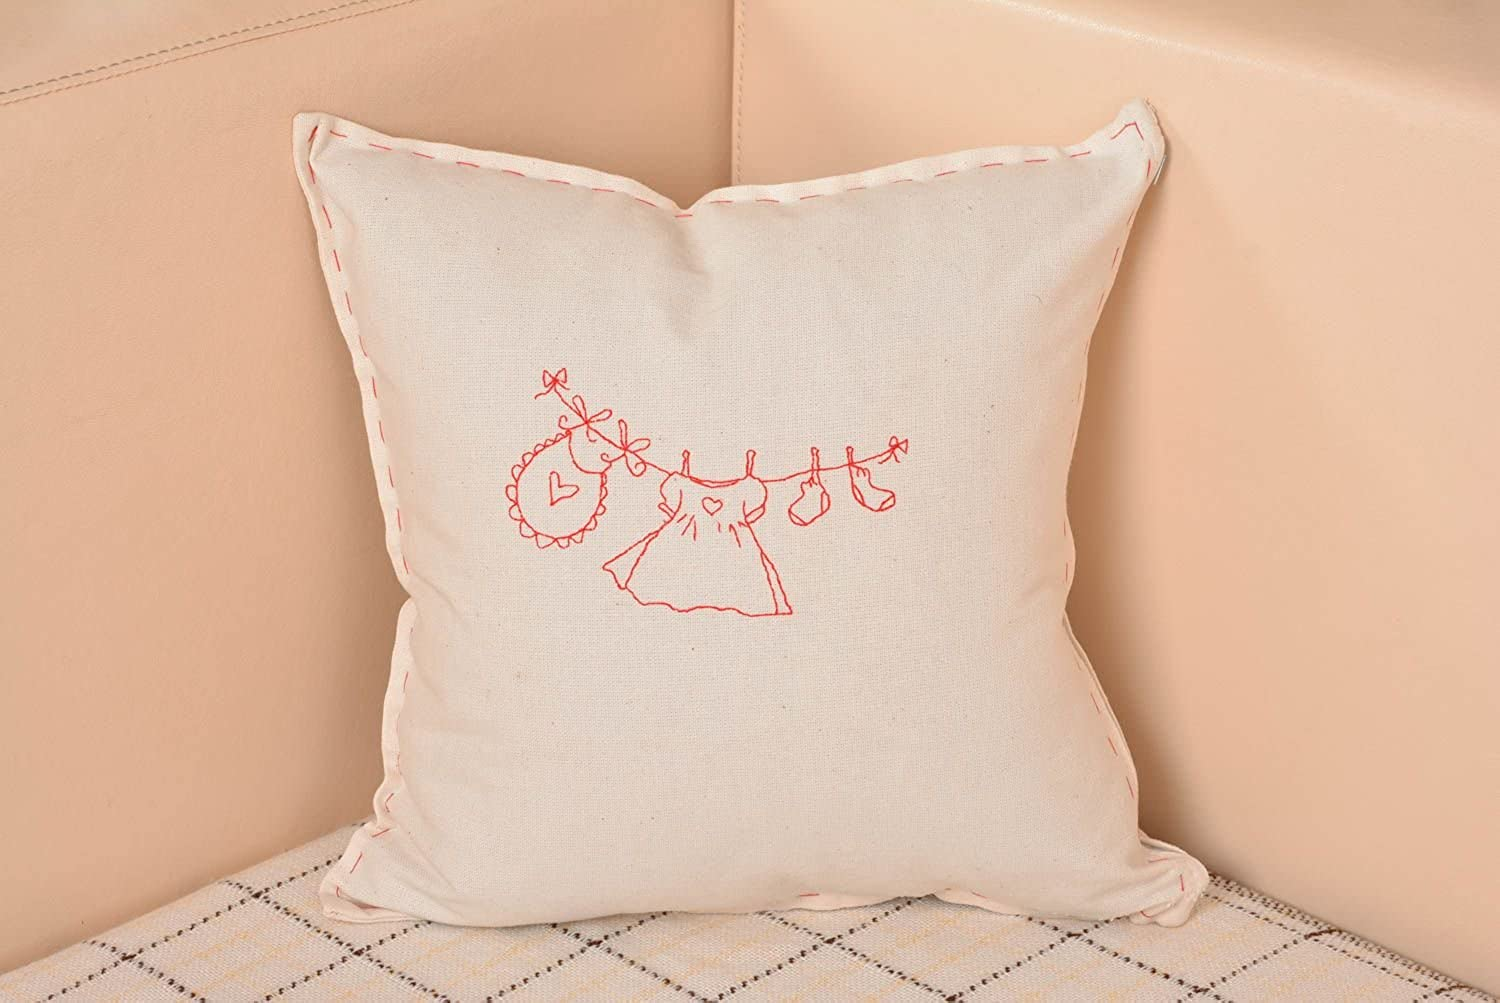 Handmade White Pillow Case Made Of Semi Linen With Designer Embroidery